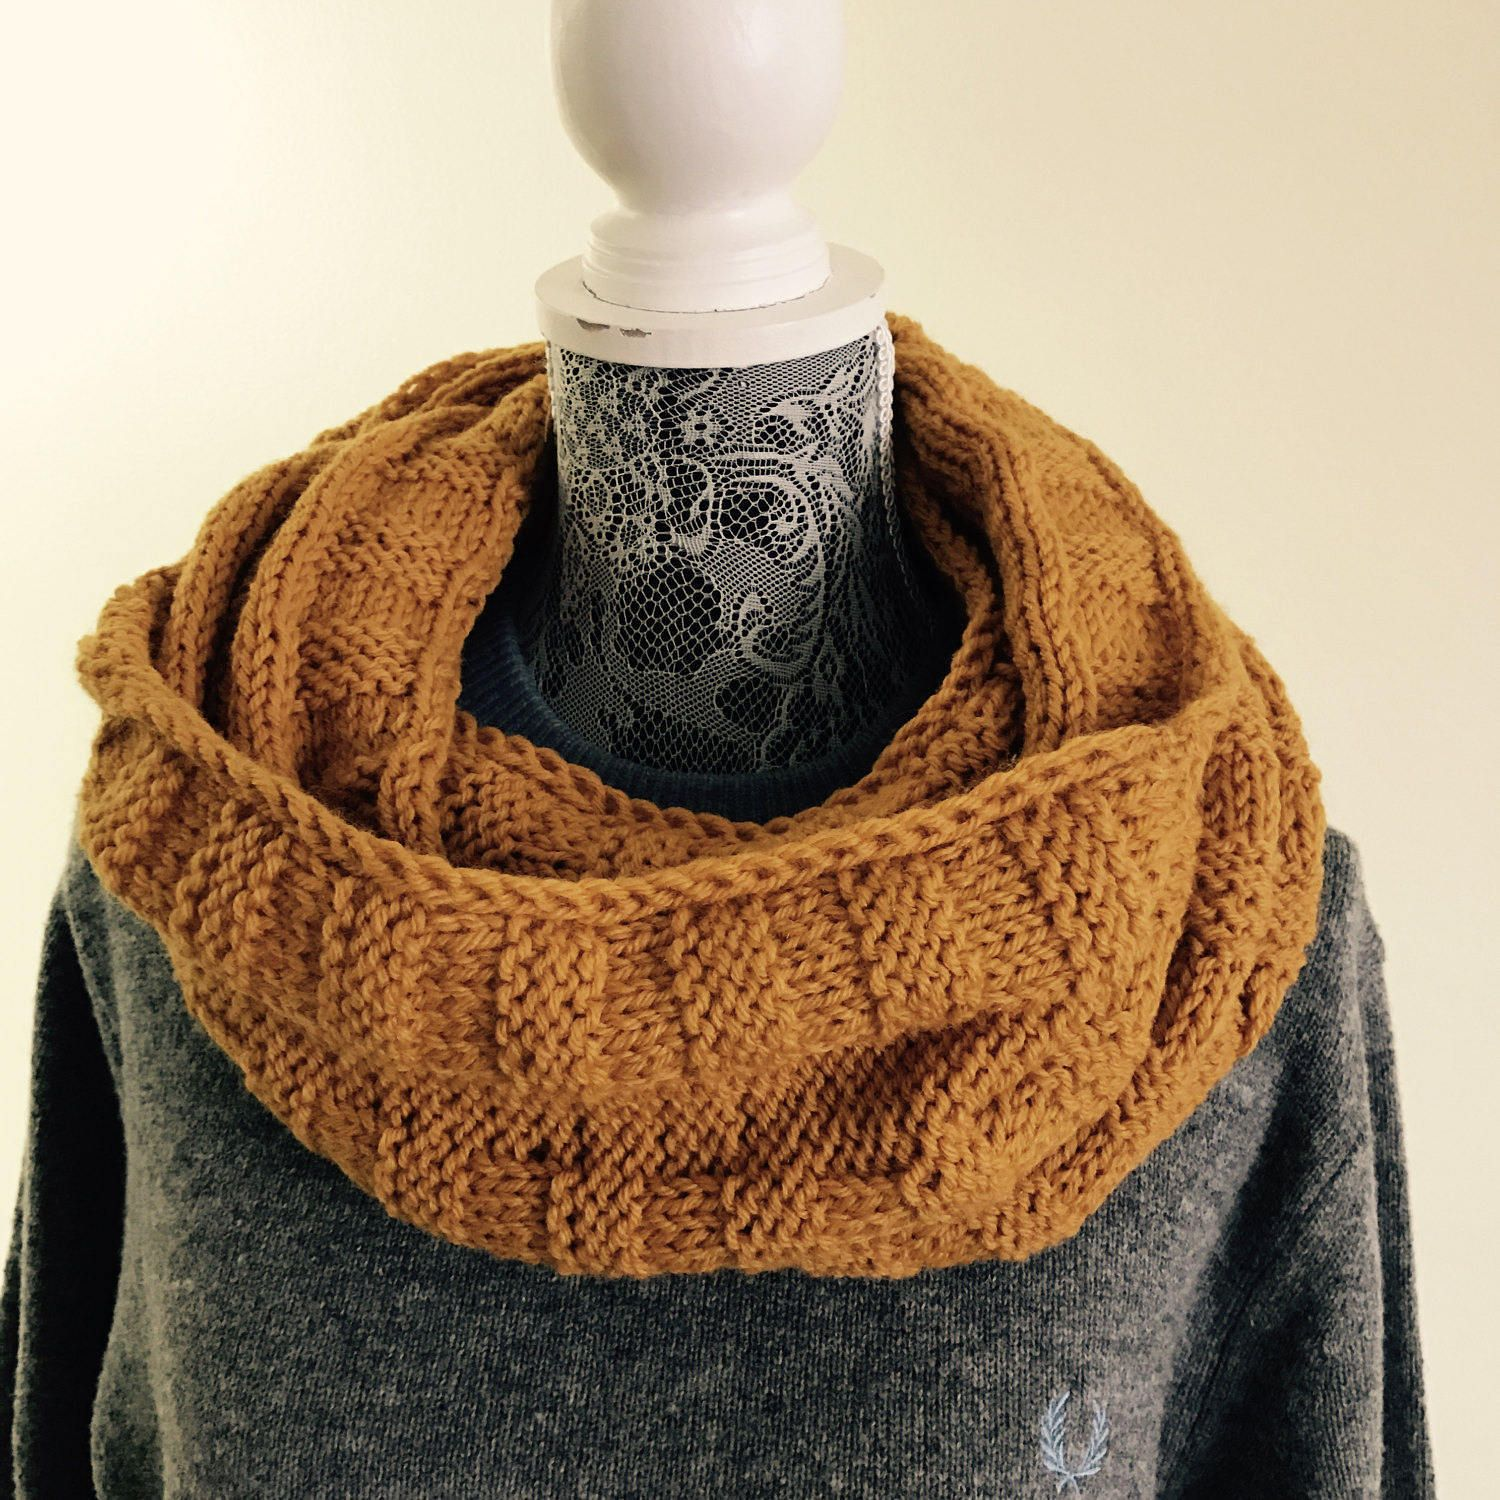 fashion fringe mens chunky gift infinity tassels blanket pin him charcoal scarf gray knit cowl for